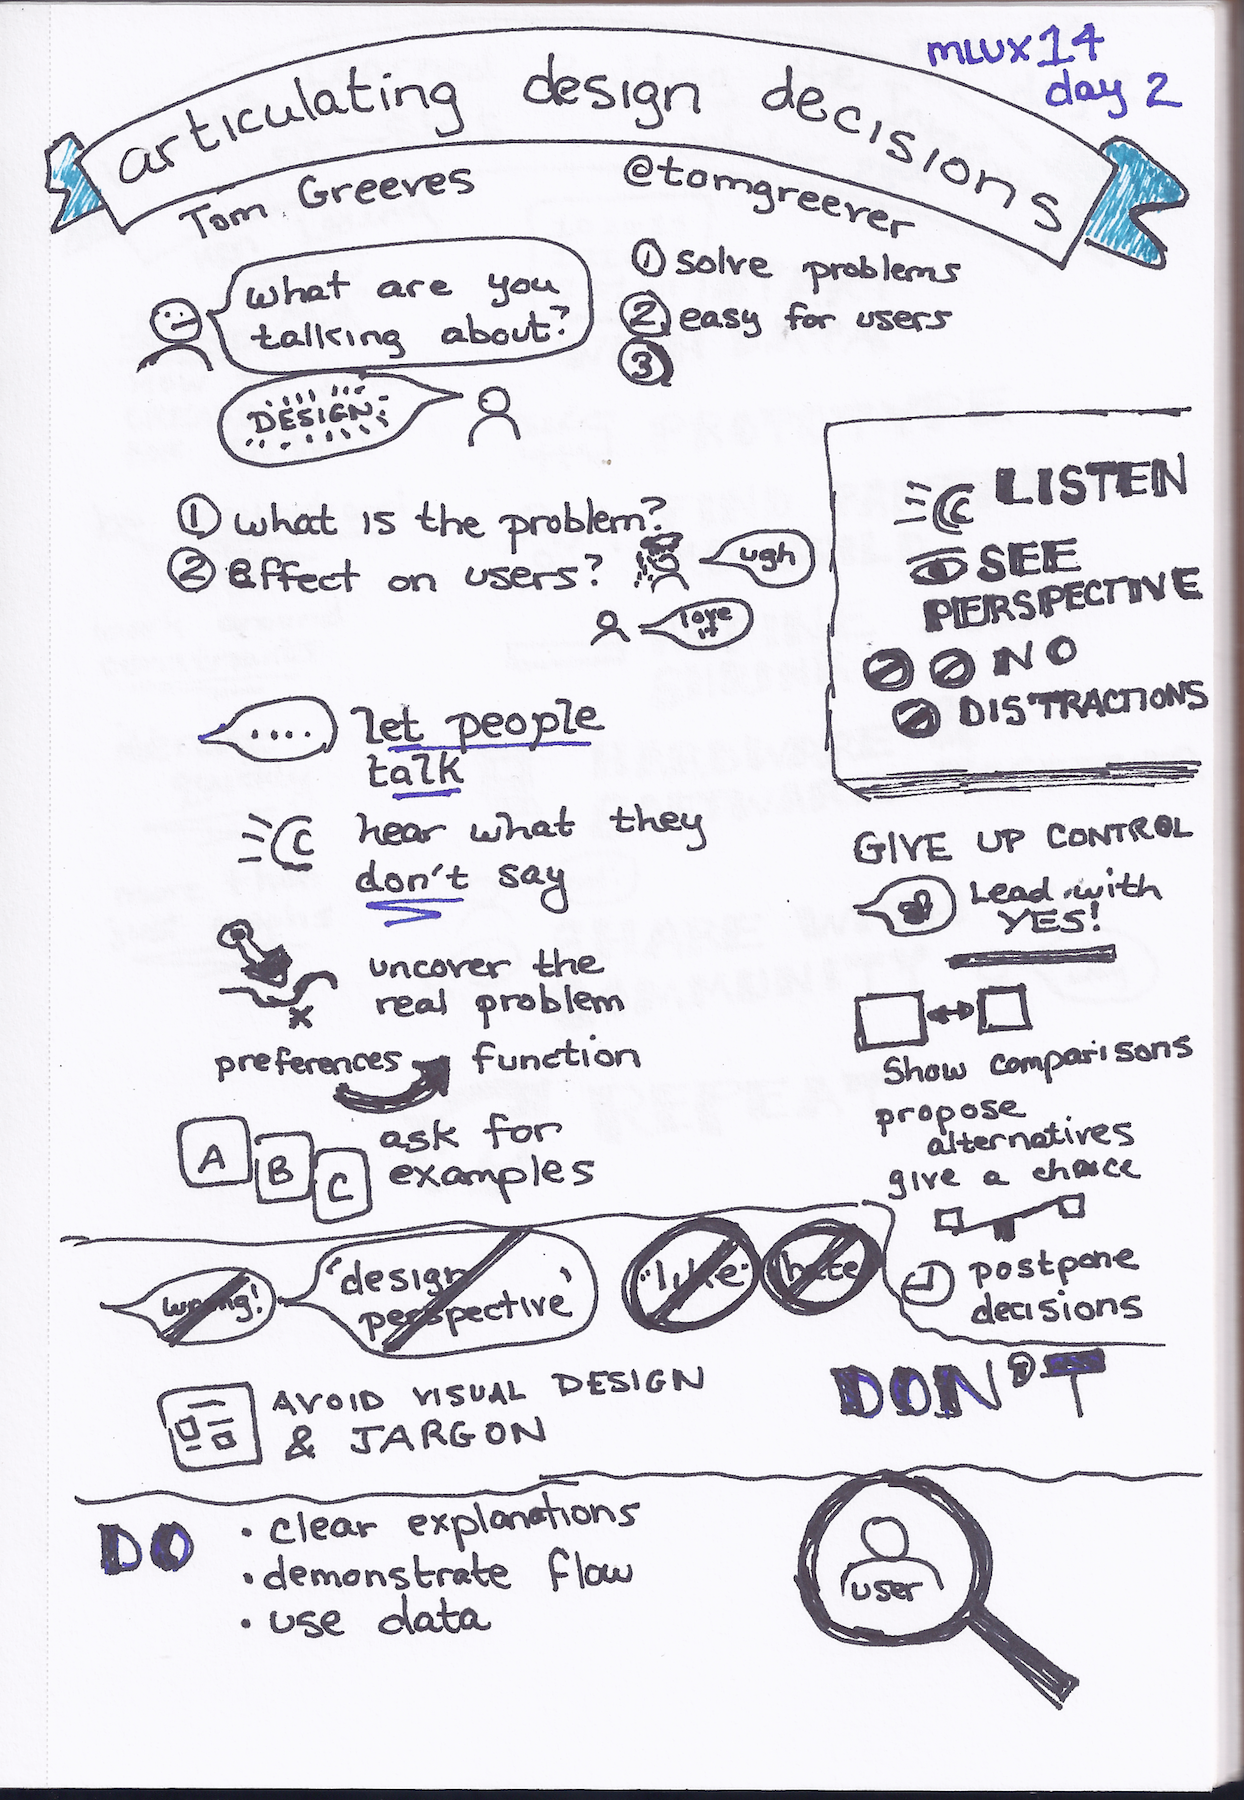 Articuliating Design Decisions (Tom Greeves).png